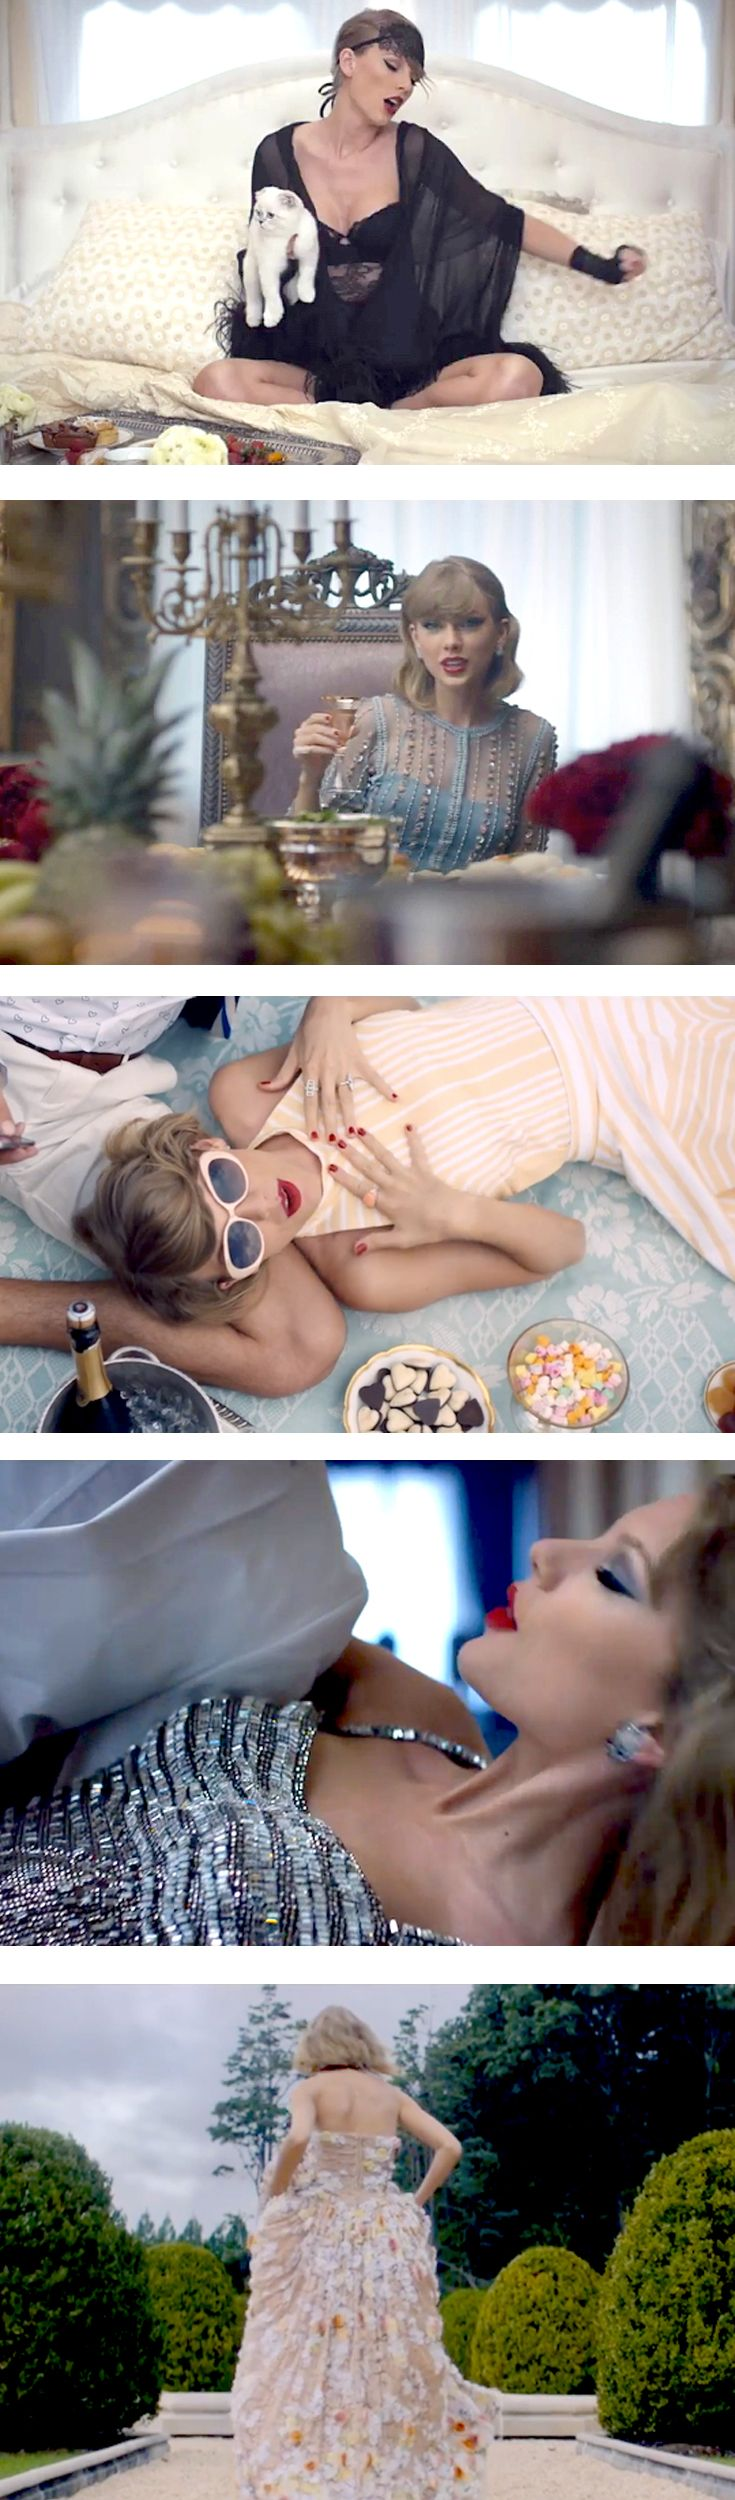 All the Looks from Taylor Swift's New Video Blank Space! #BlankSpace #TaylorSwift